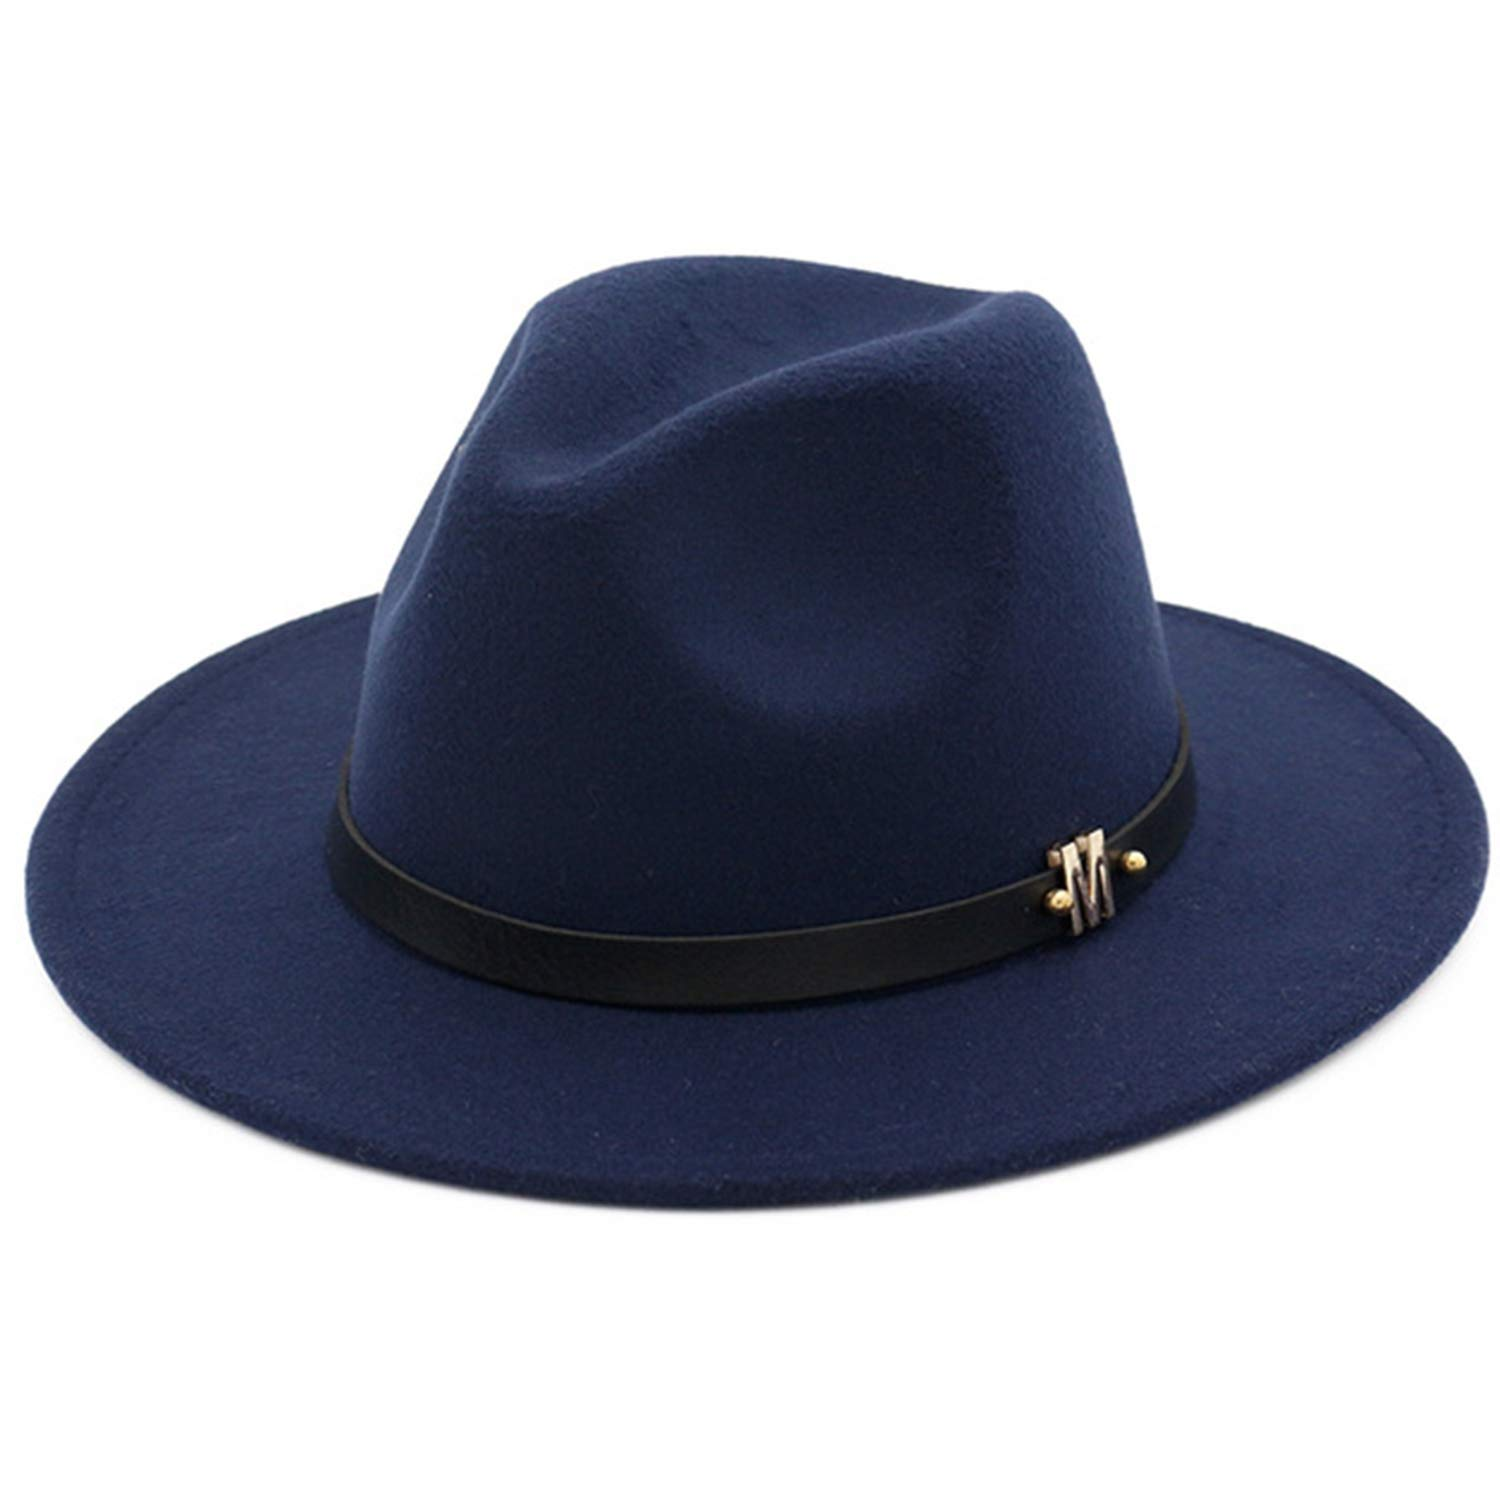 Fashion Solid Color Ladies Vintage WoolFedora Man Woman top hat Winter Wide Brimmed Felt hat